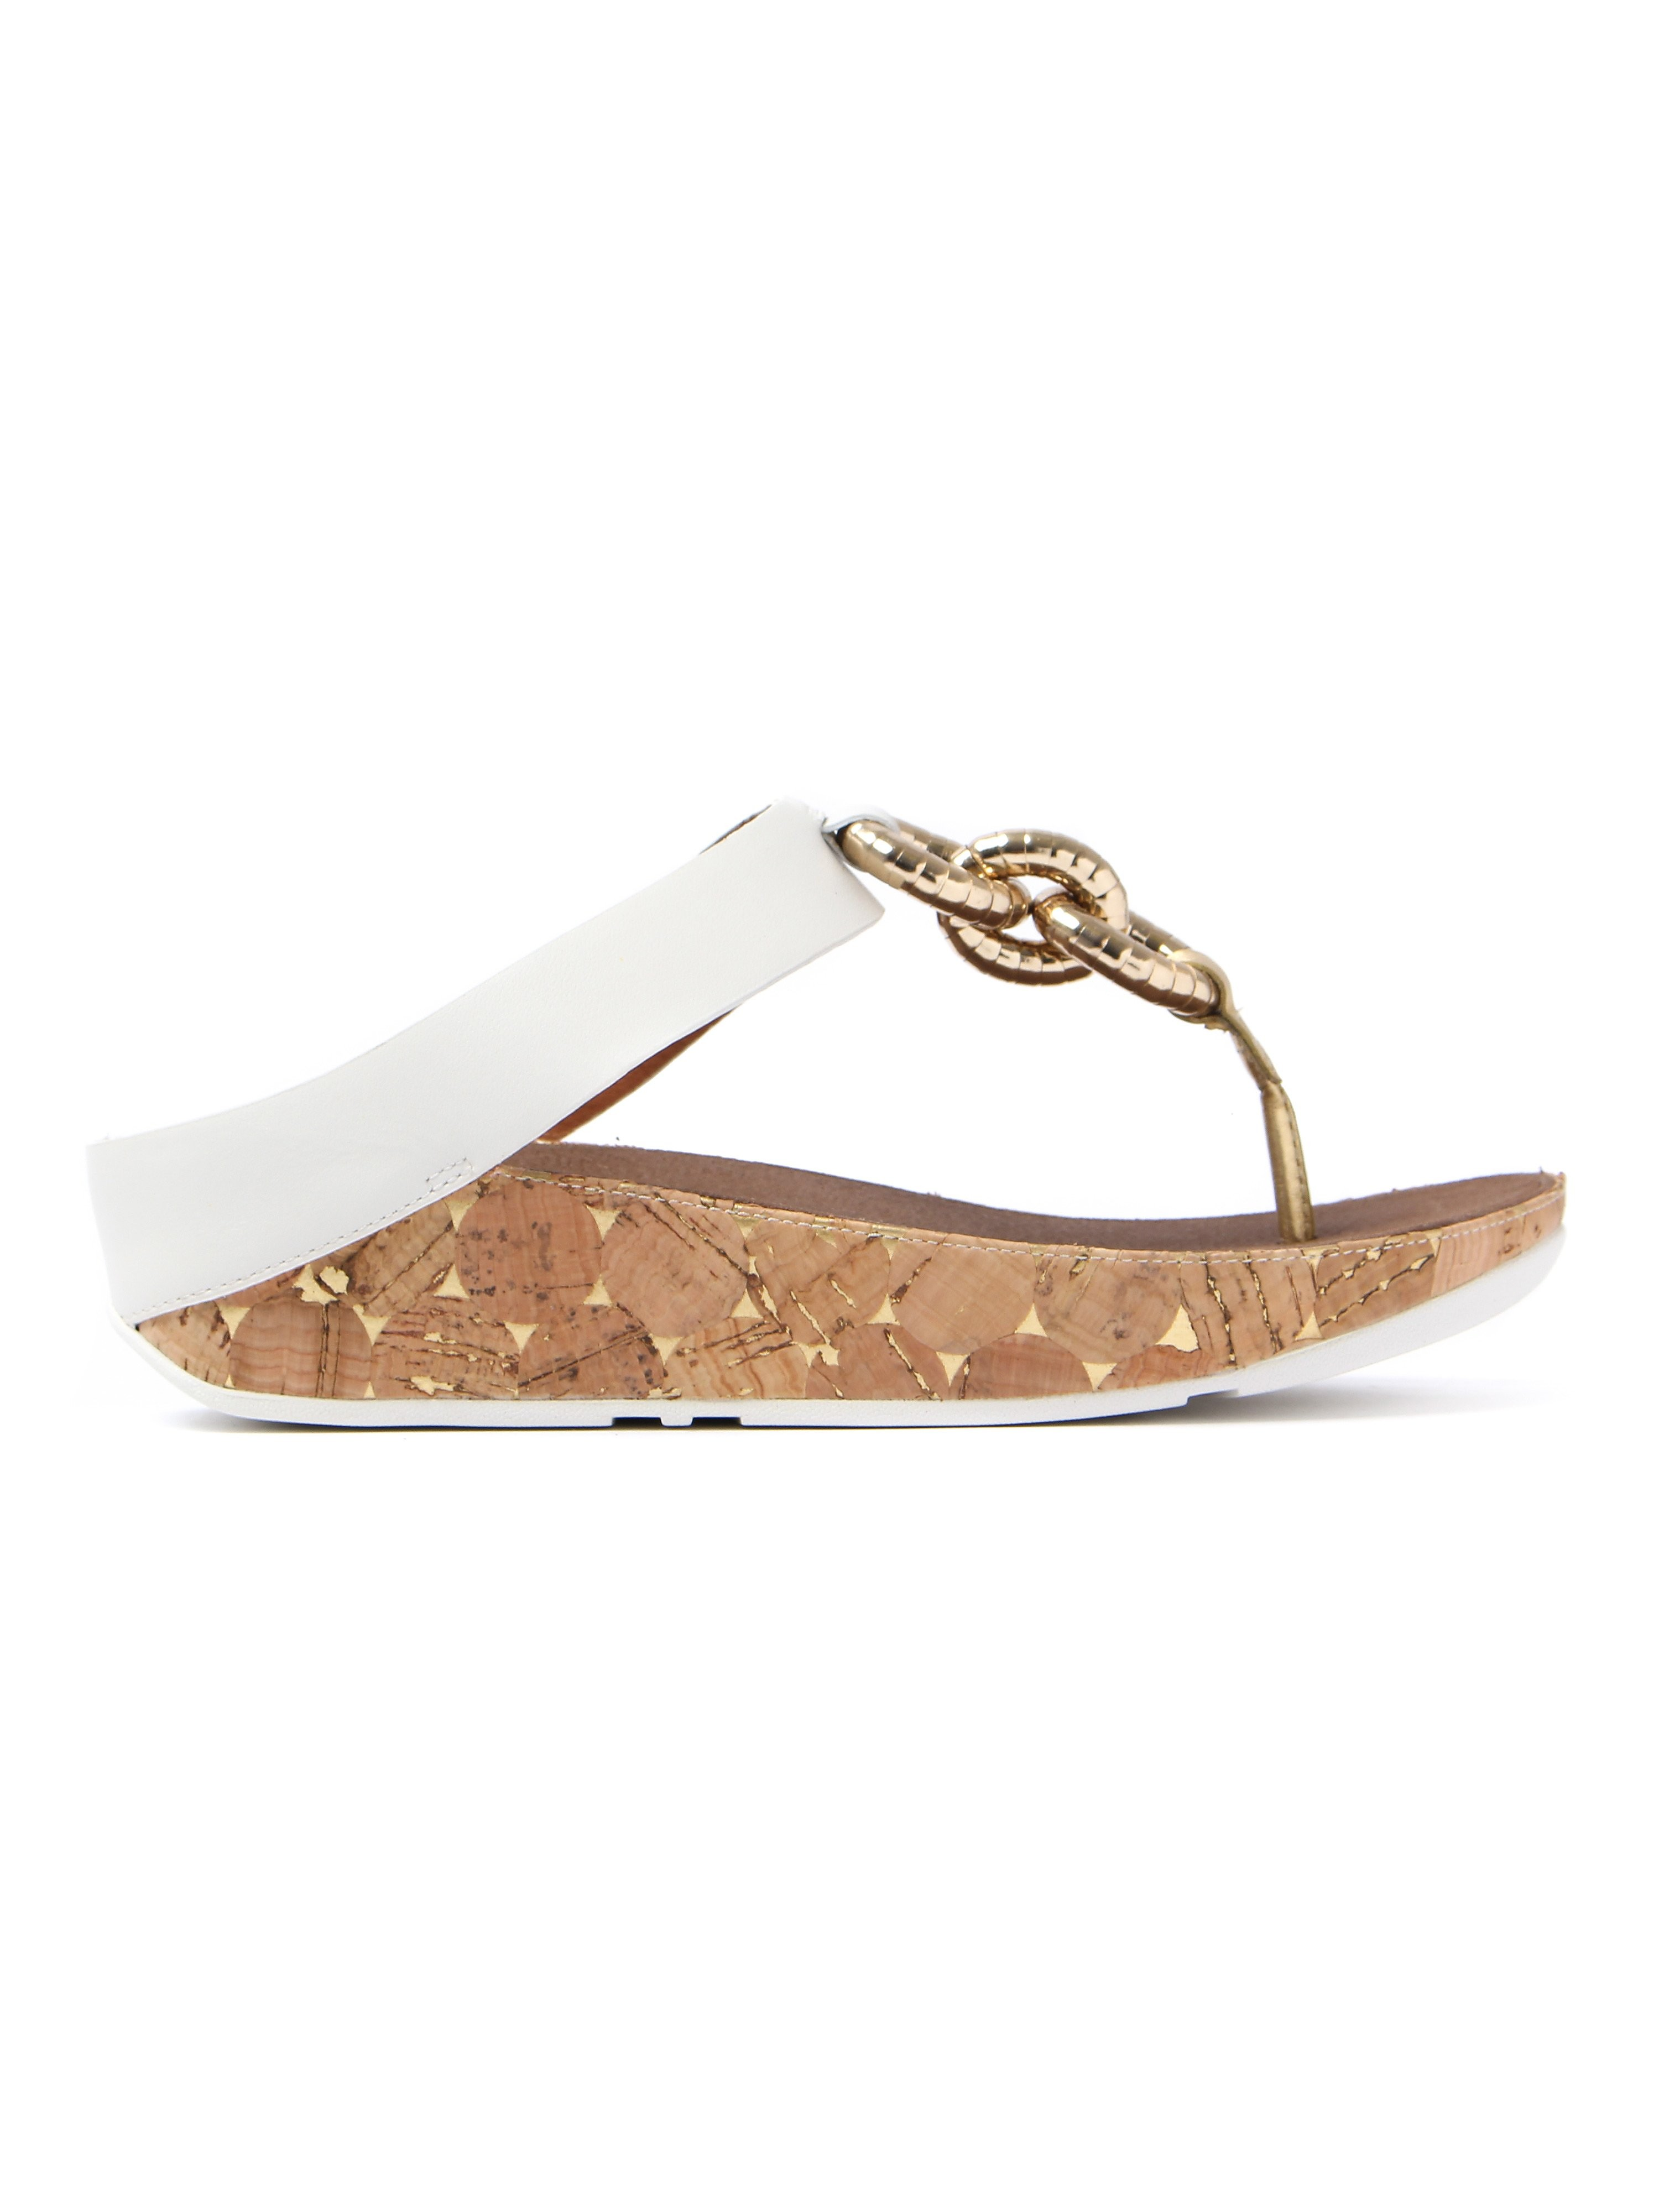 FitFlop Women's Superchain Toe-Post Sandals - Urban White Leather